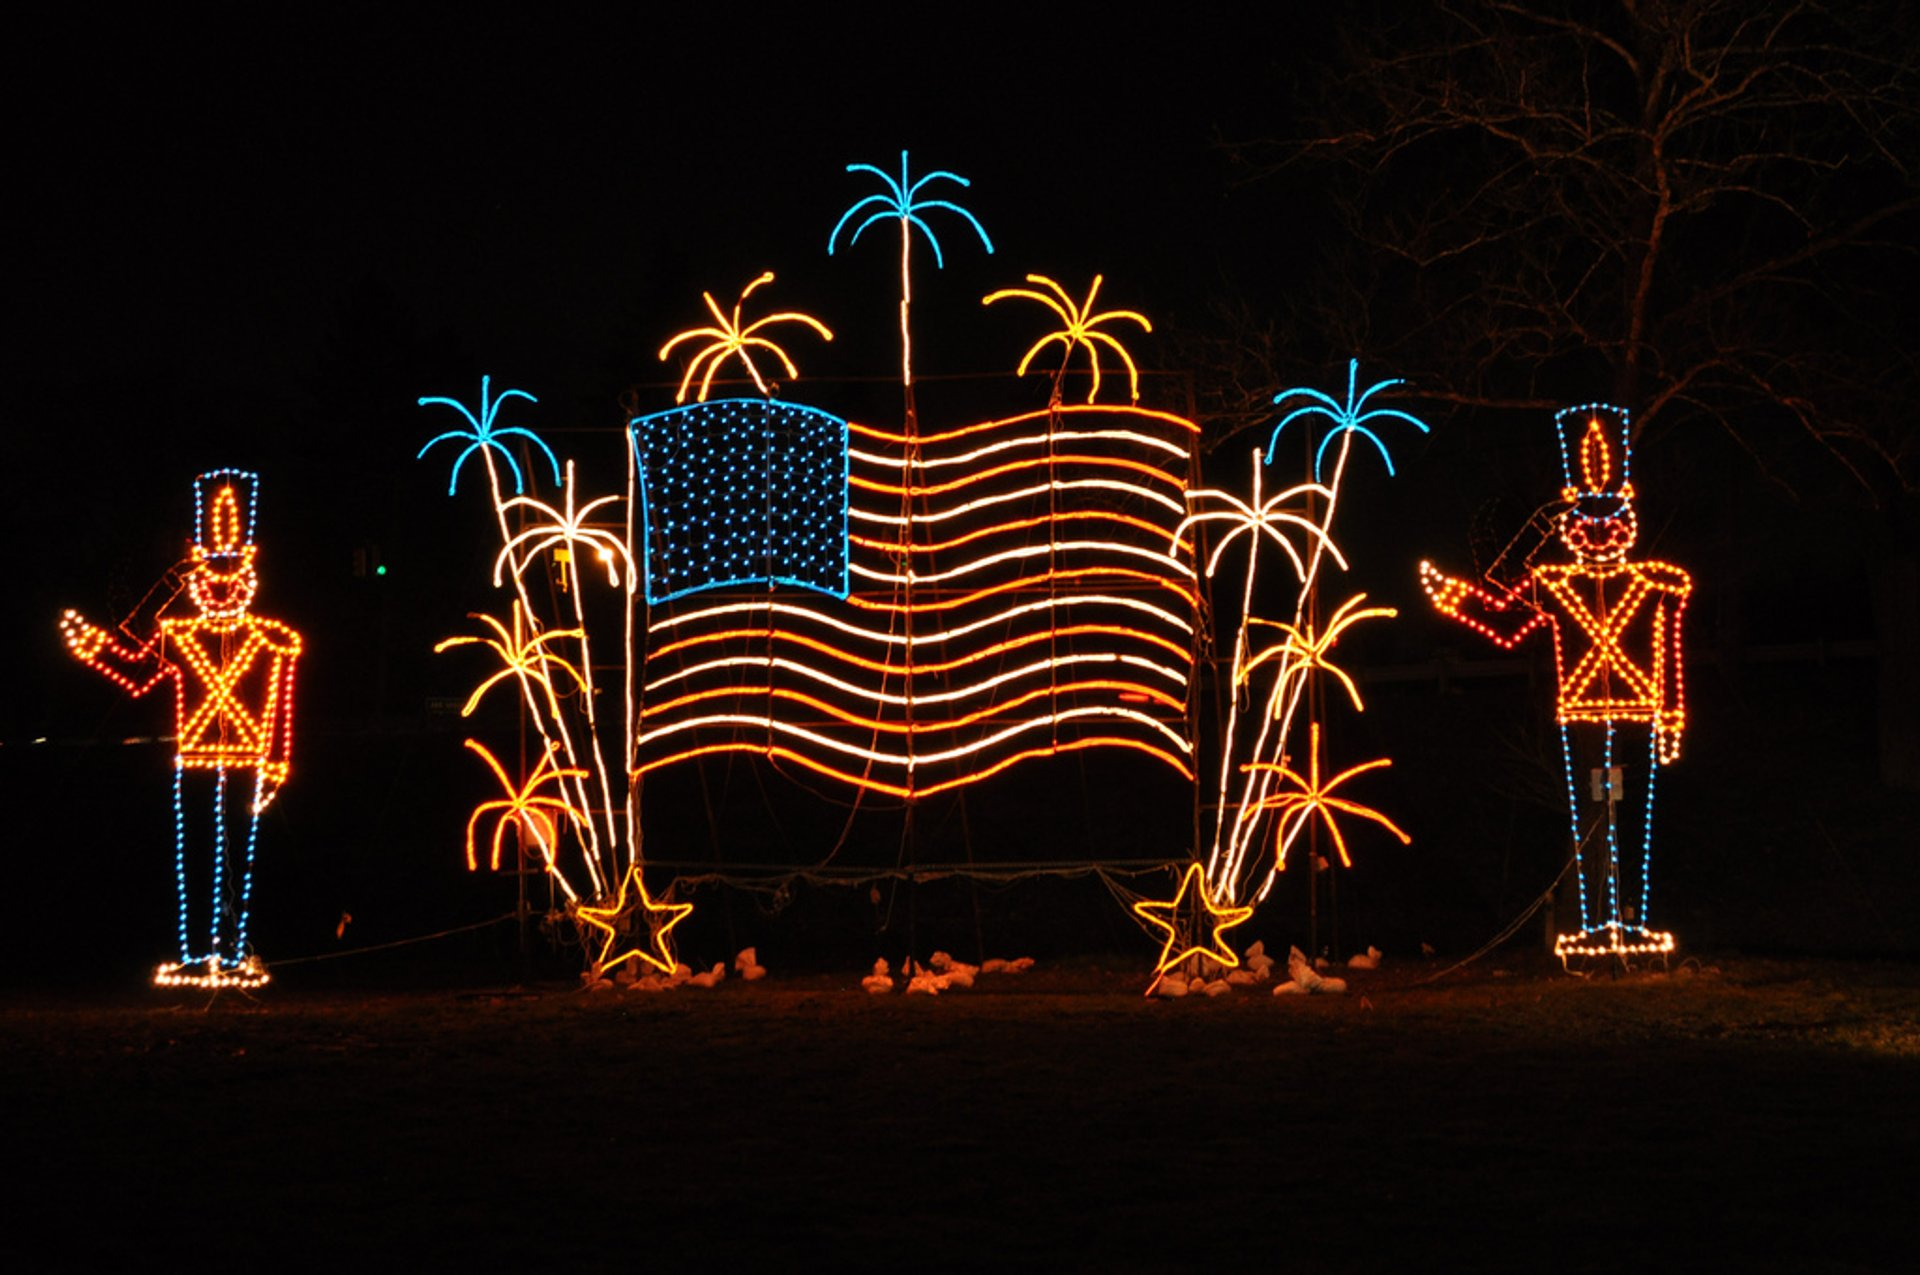 Wayne County Lightfest in Midwest - Best Season 2020